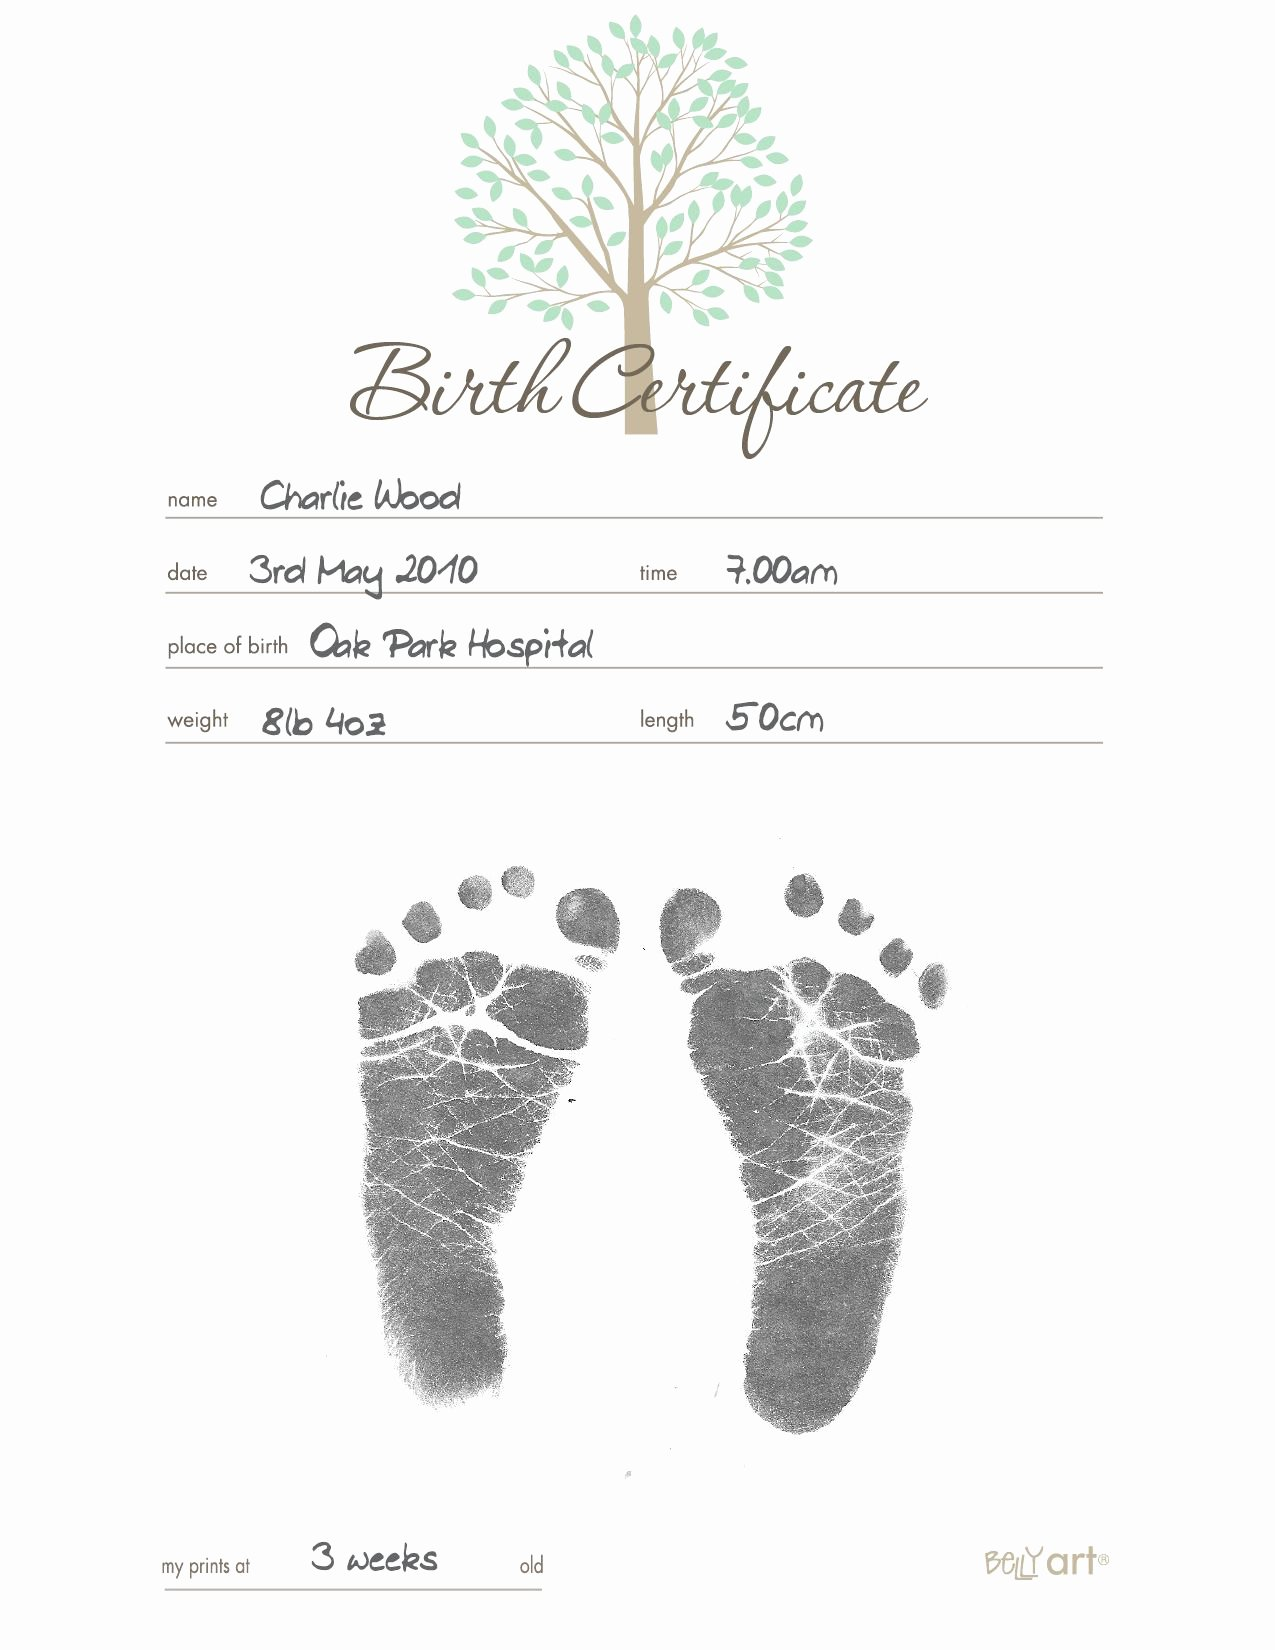 Baby Birth Certificate Template Fresh Belly Art Inkless Birth Certificate